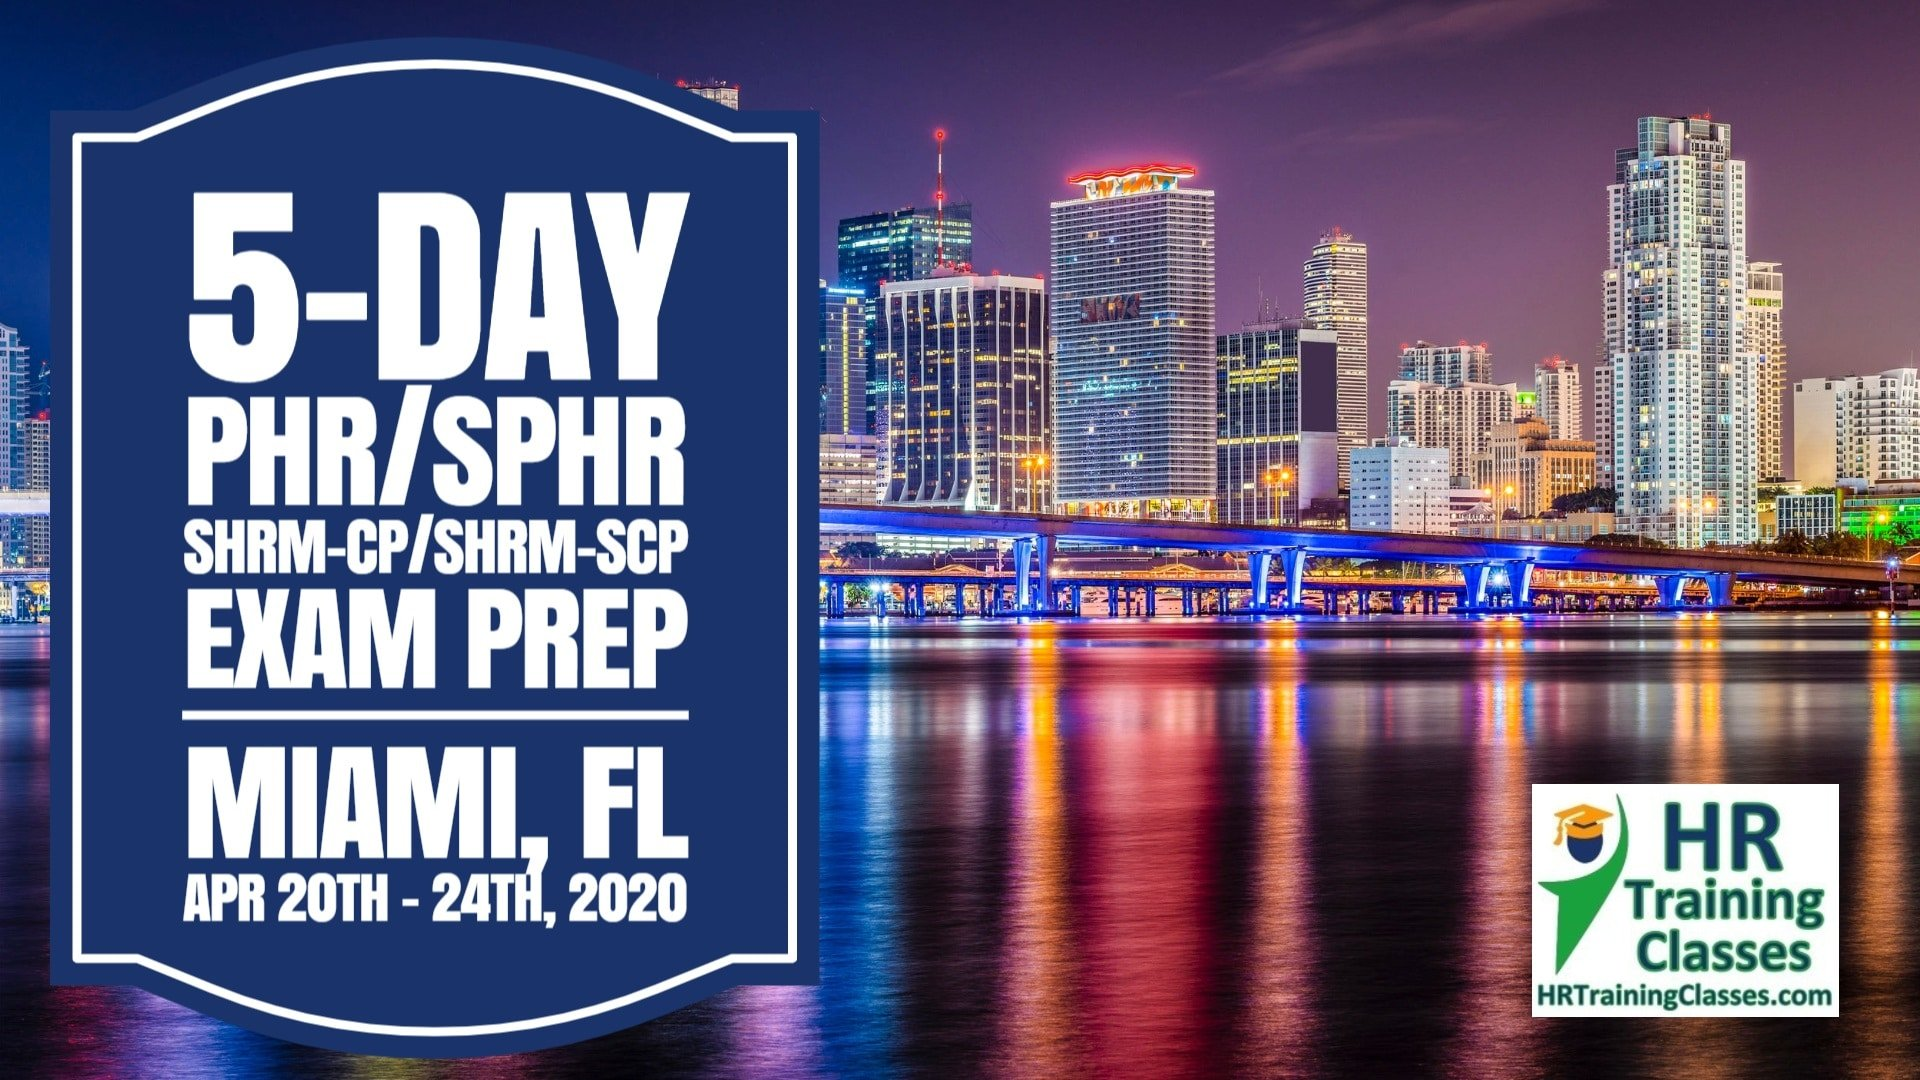 5 Day SHRM-CP, SHRM-SCP, PHR, SPHR Exam Prep Boot Camp in Miami, FL (Starts 4/20/2020)